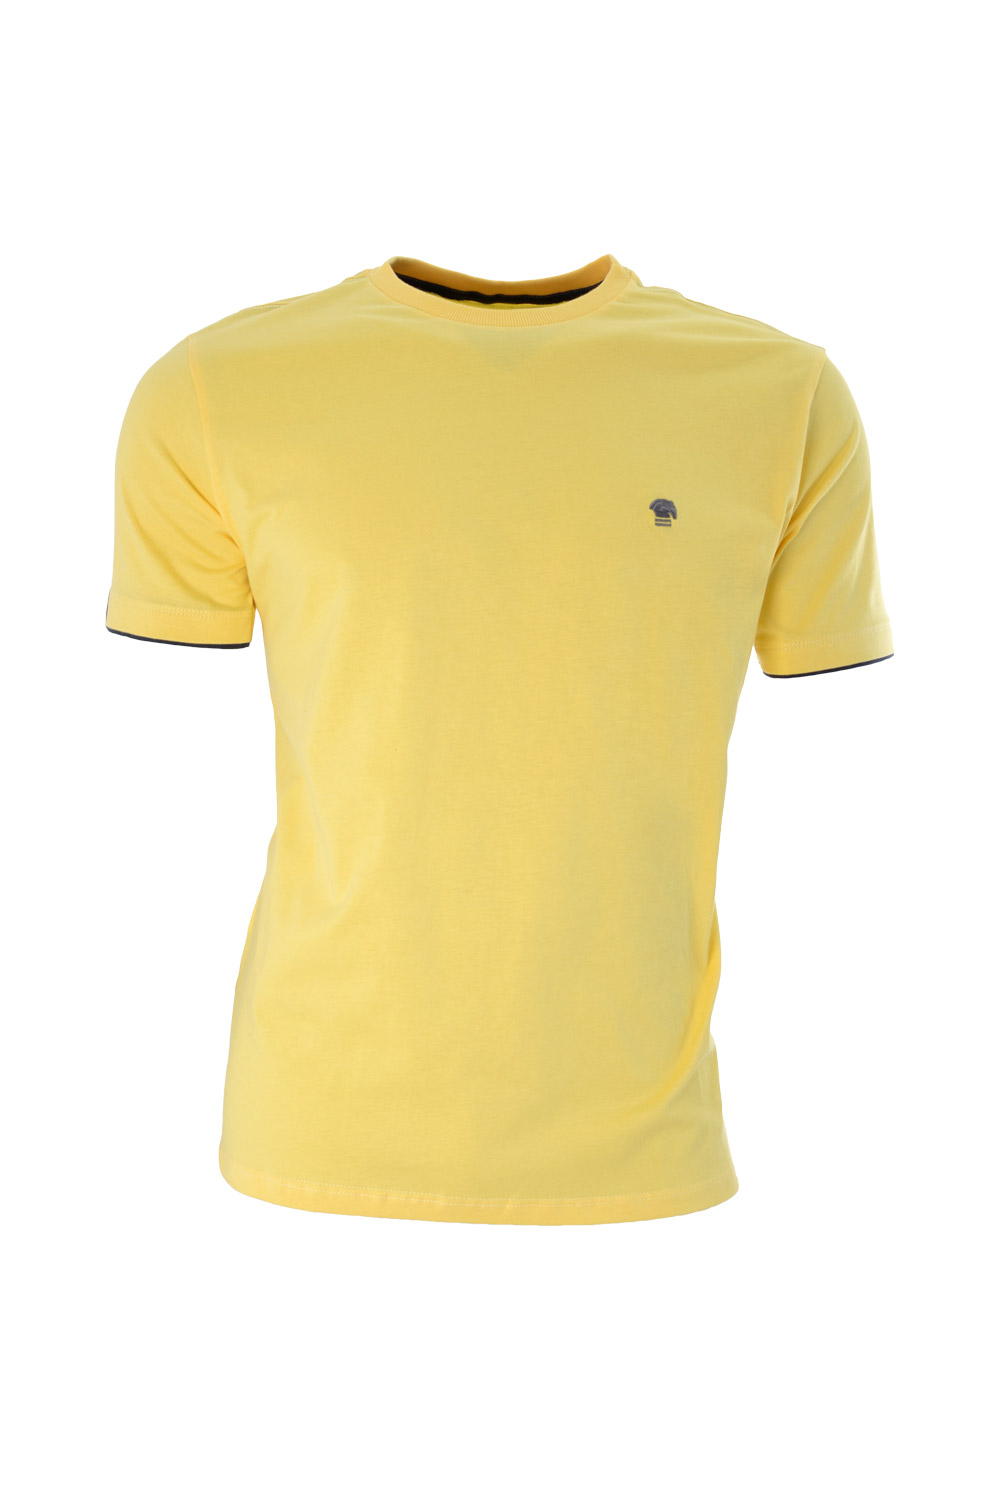 CAMISETA MC BLUES SUPER SLIM ALGODAO GOLA C LISO AMARELO CLARO